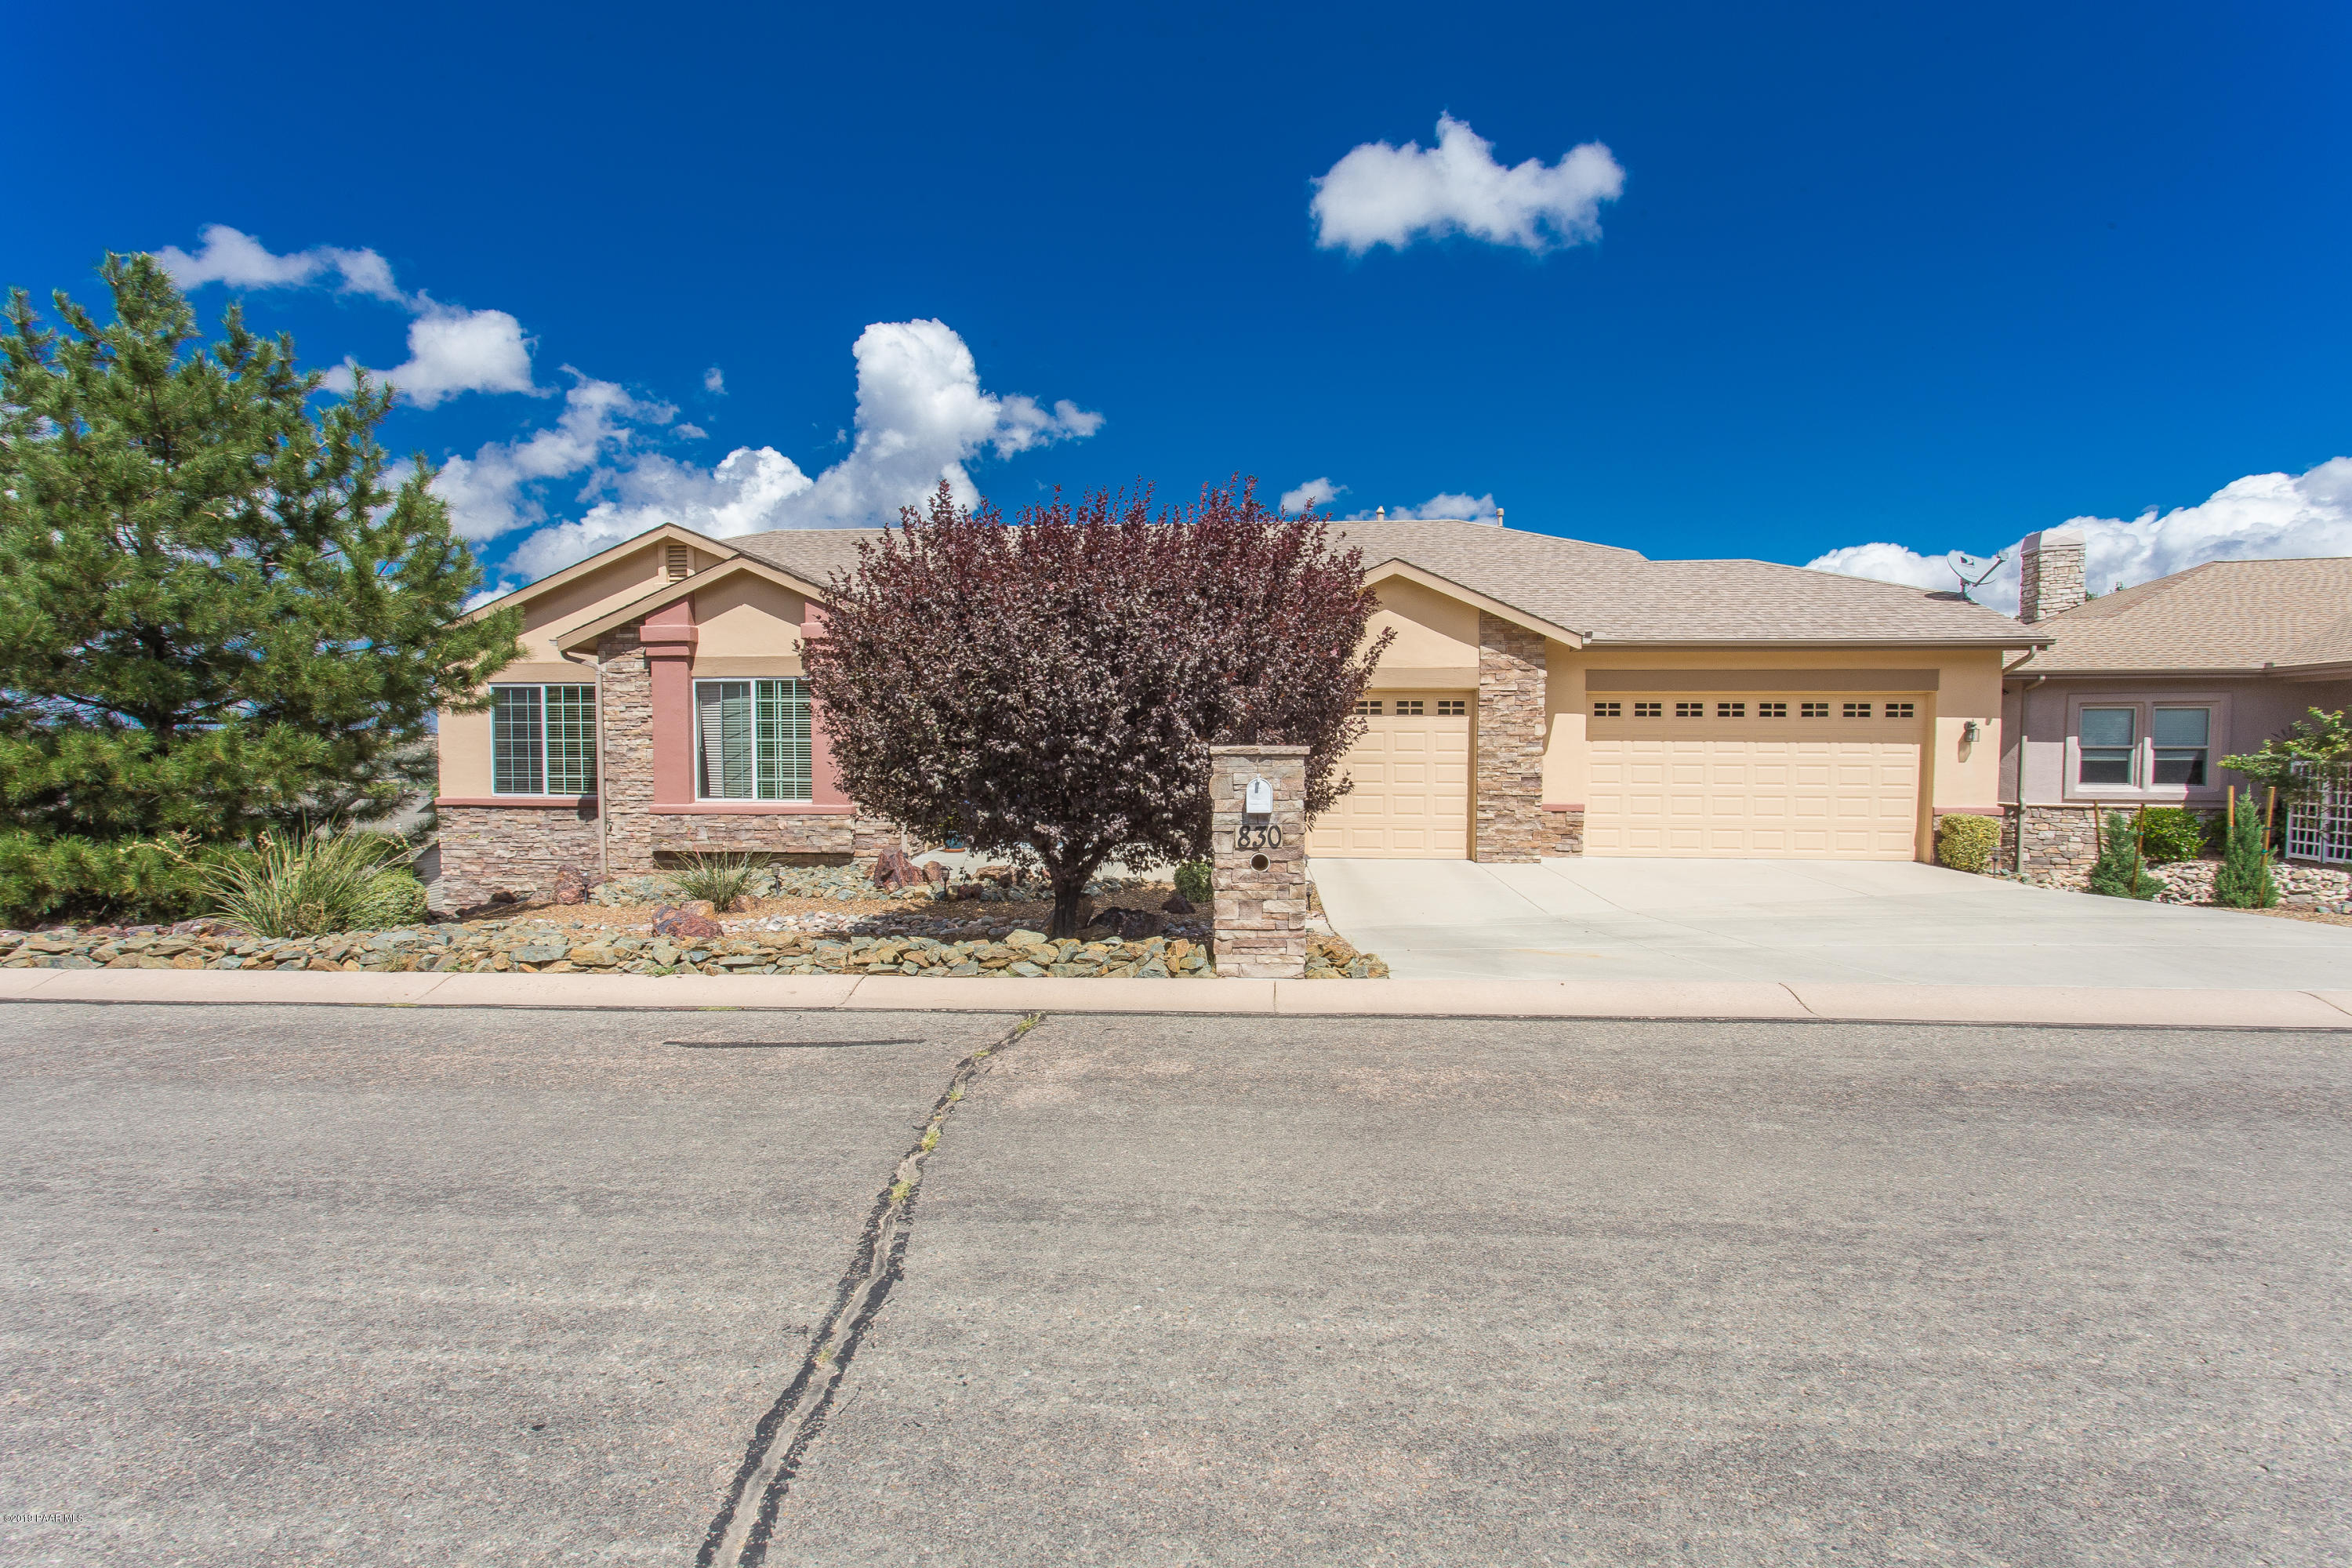 Photo of 830 Lakeview, Prescott, AZ 86301